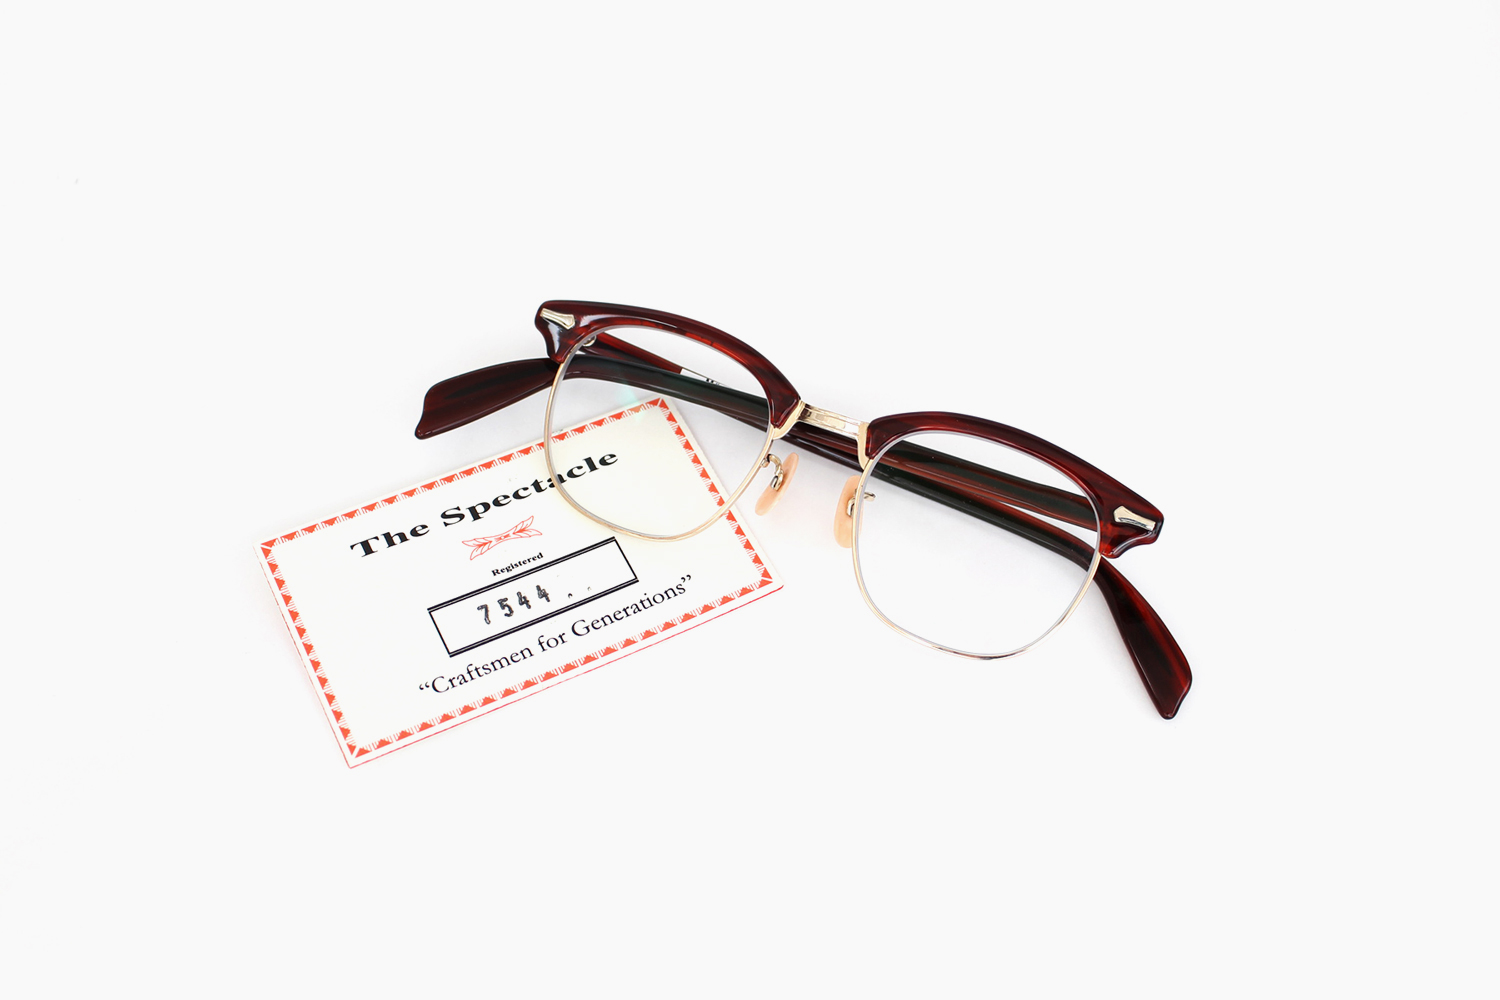 TS_Shuron_Optical_Company_Combination_1_10-12K_Gold_Filled_with_Cellulose_Acetate_red_6